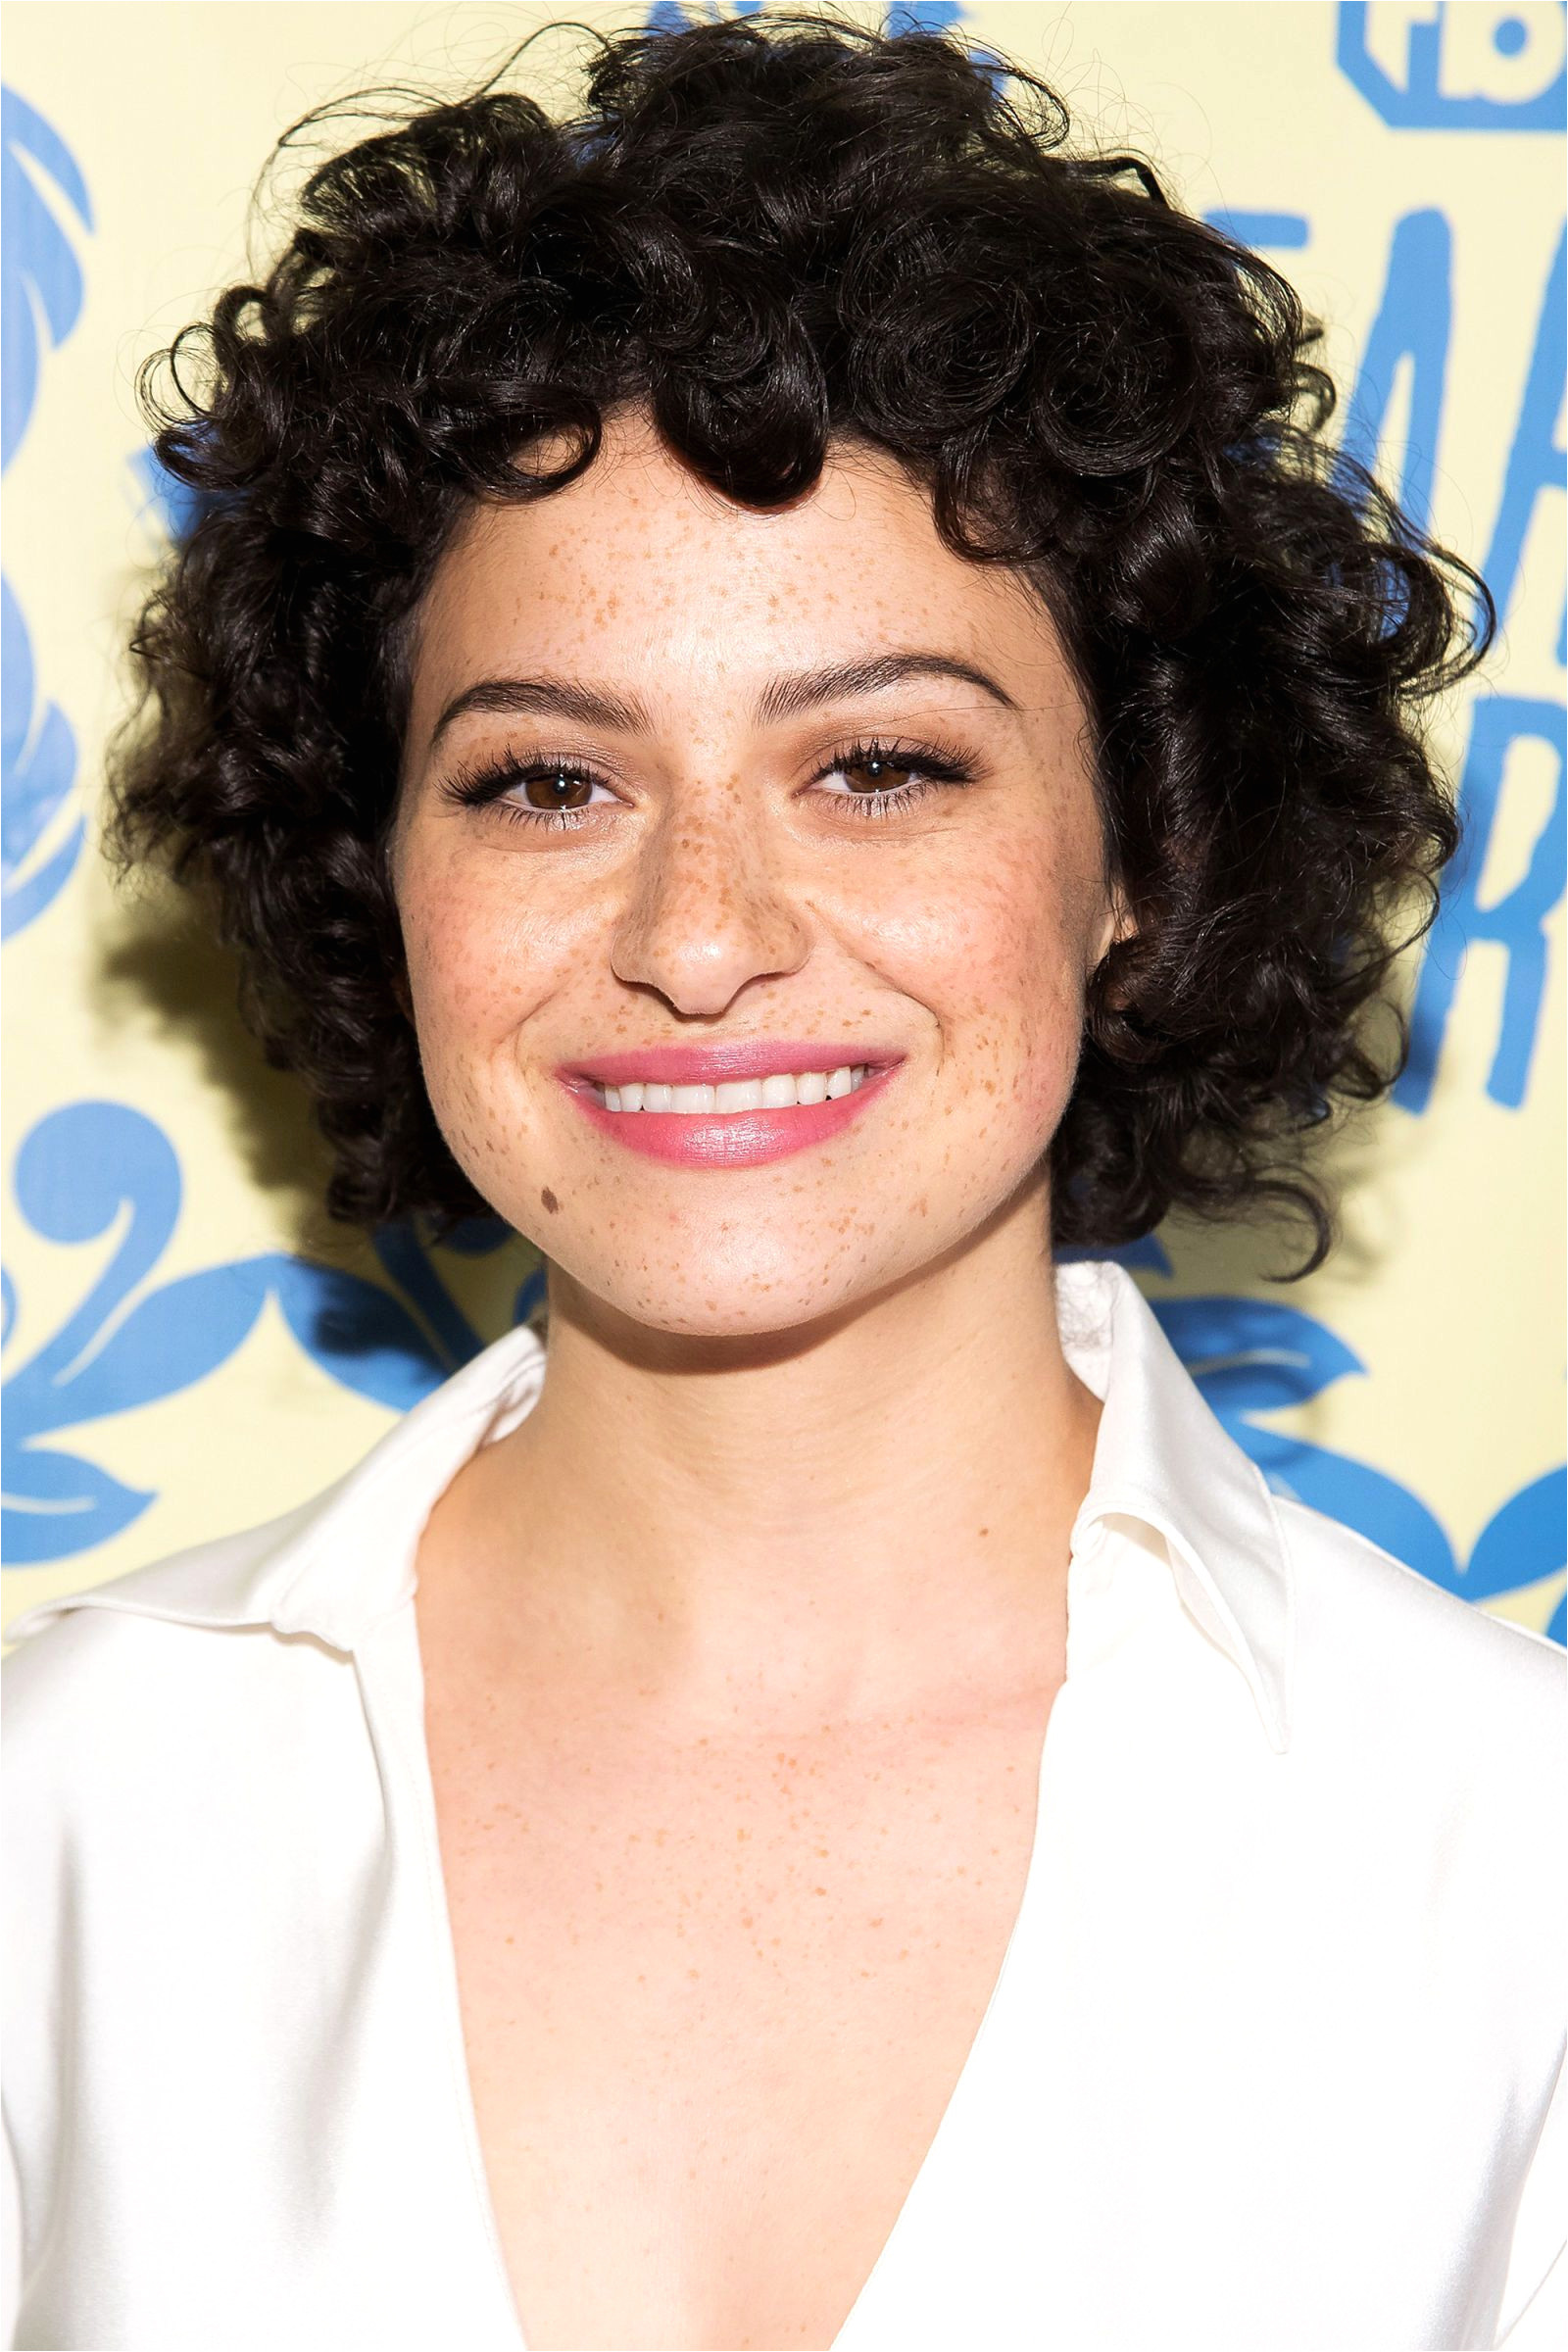 New Curly Hairstyles New Mocha Hair Tips toward Very Curly Hairstyles Fresh Curly Hair 0d